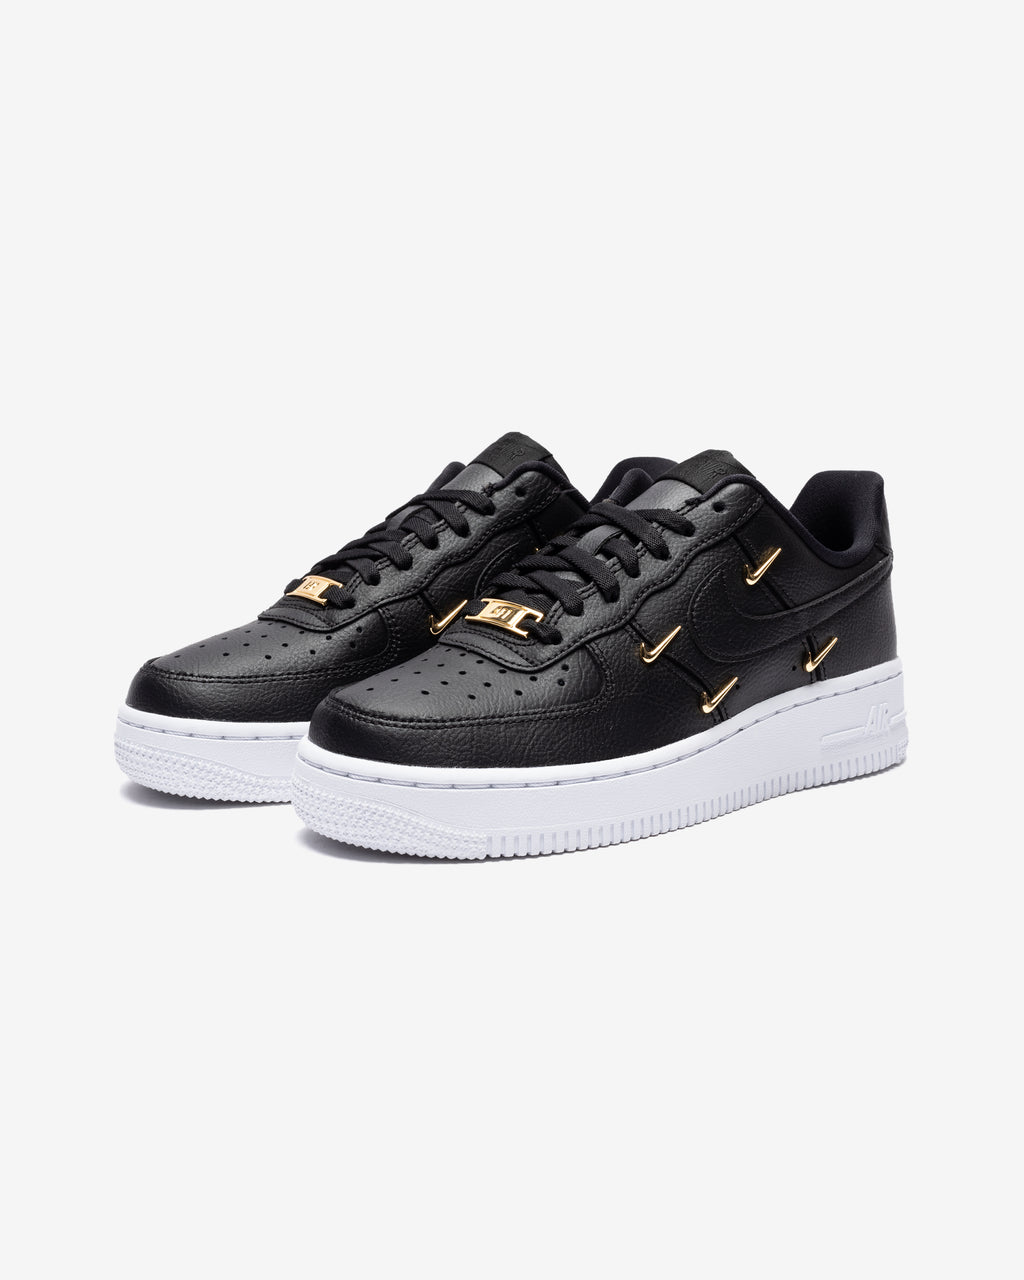 WOMEN'S AIR FORCE 1 '07 LX - BLACK/ METALLICGOLD/ HYPERROYAL